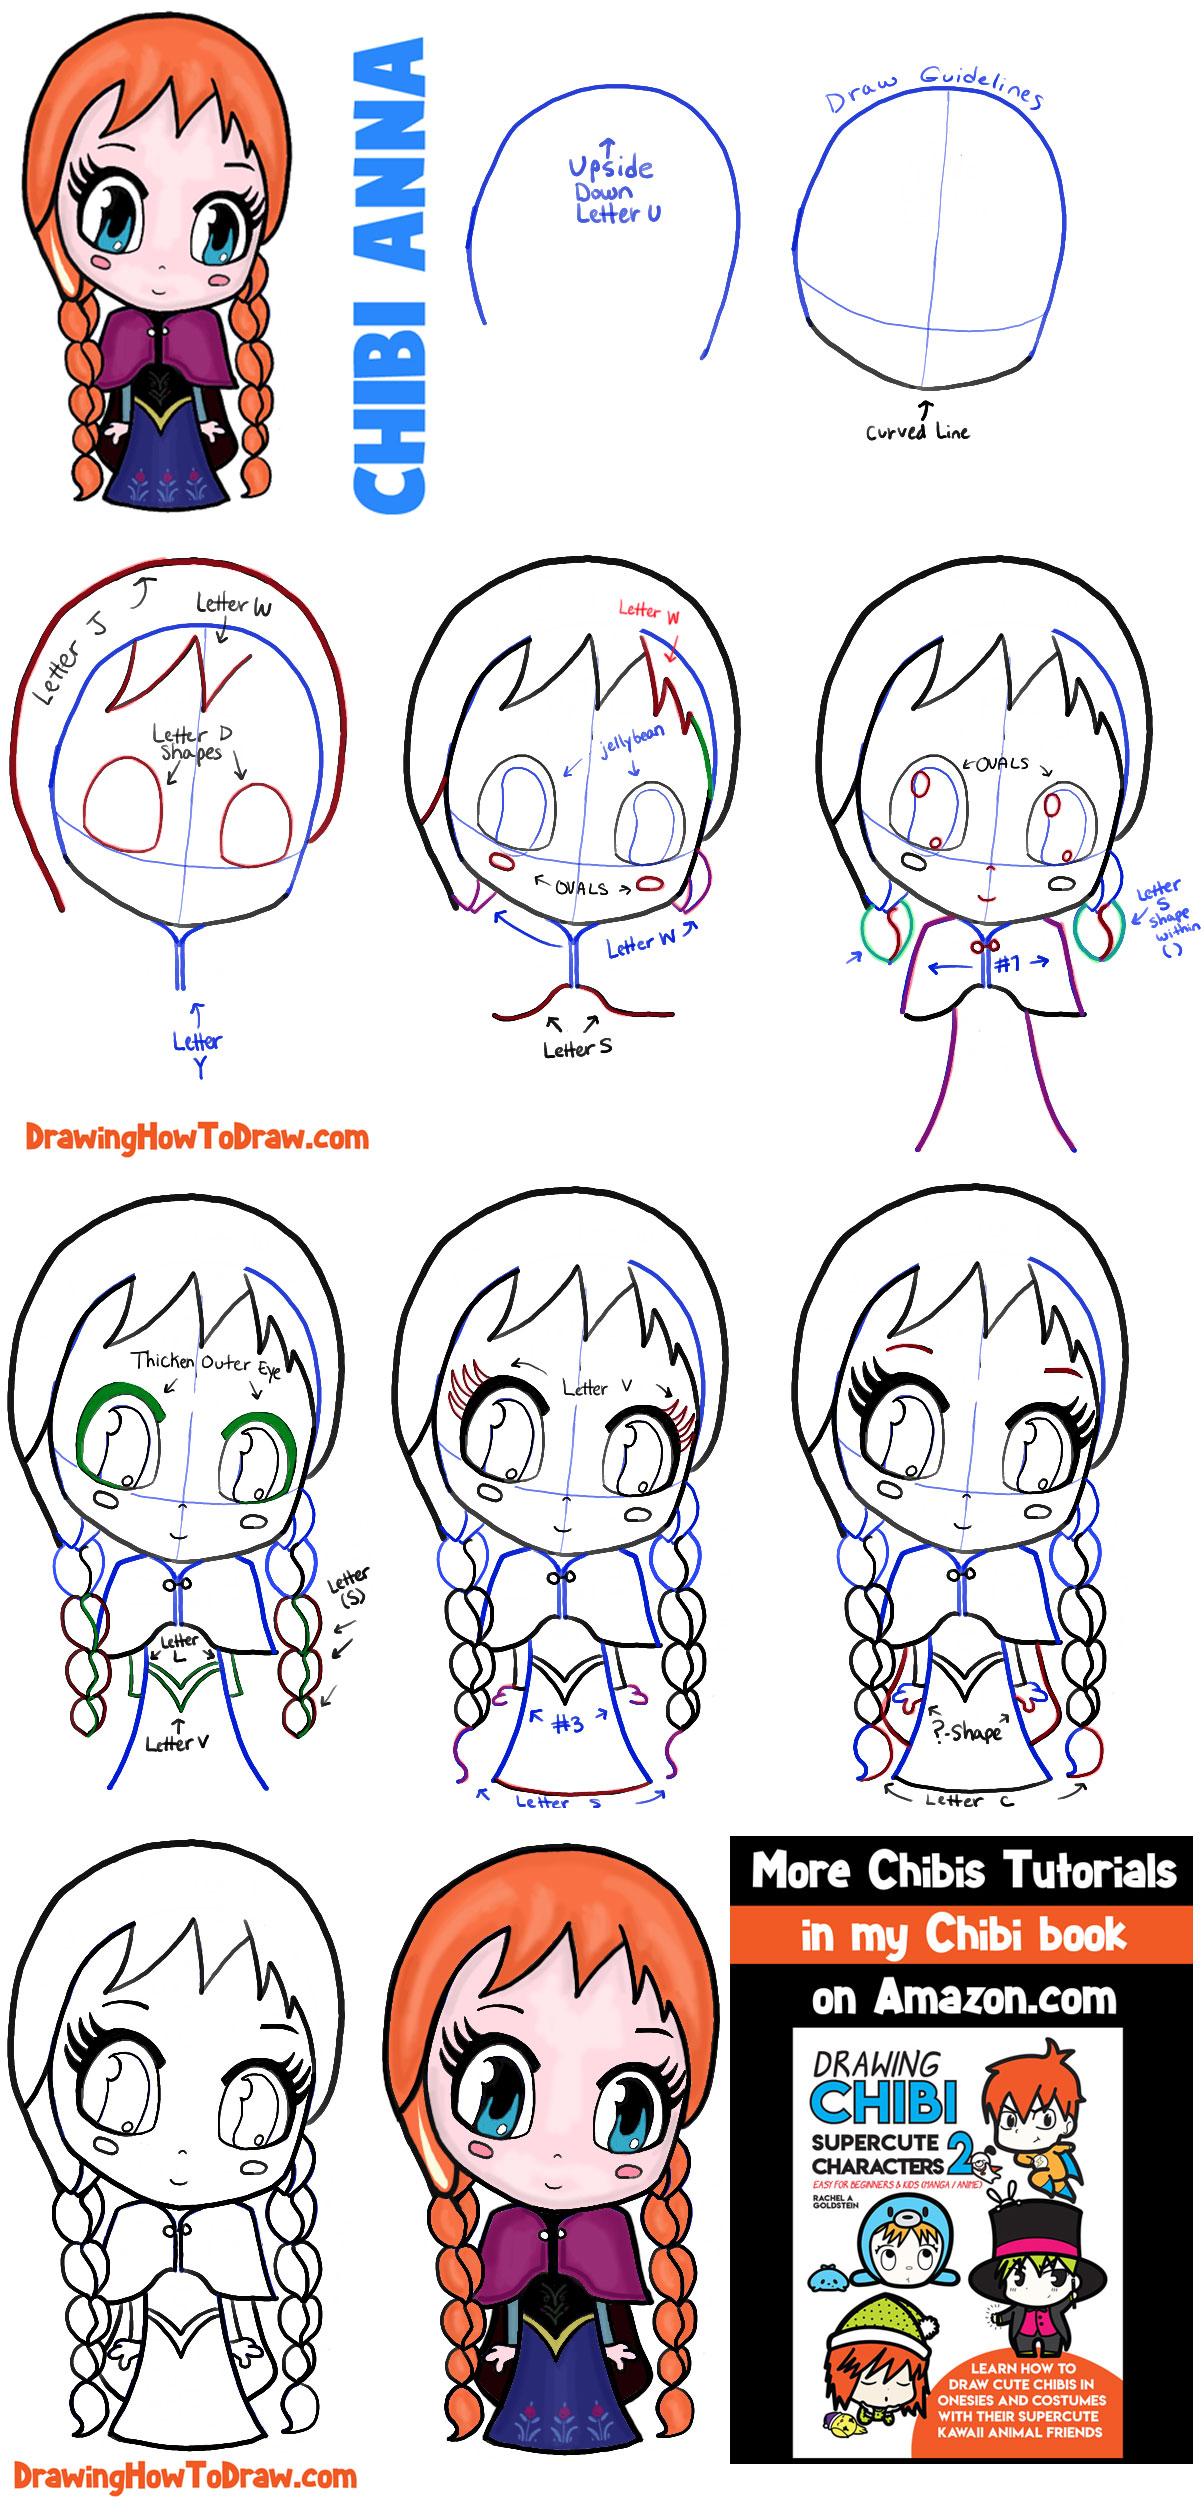 graphic free download Bean drawing chibi. How to draw anna